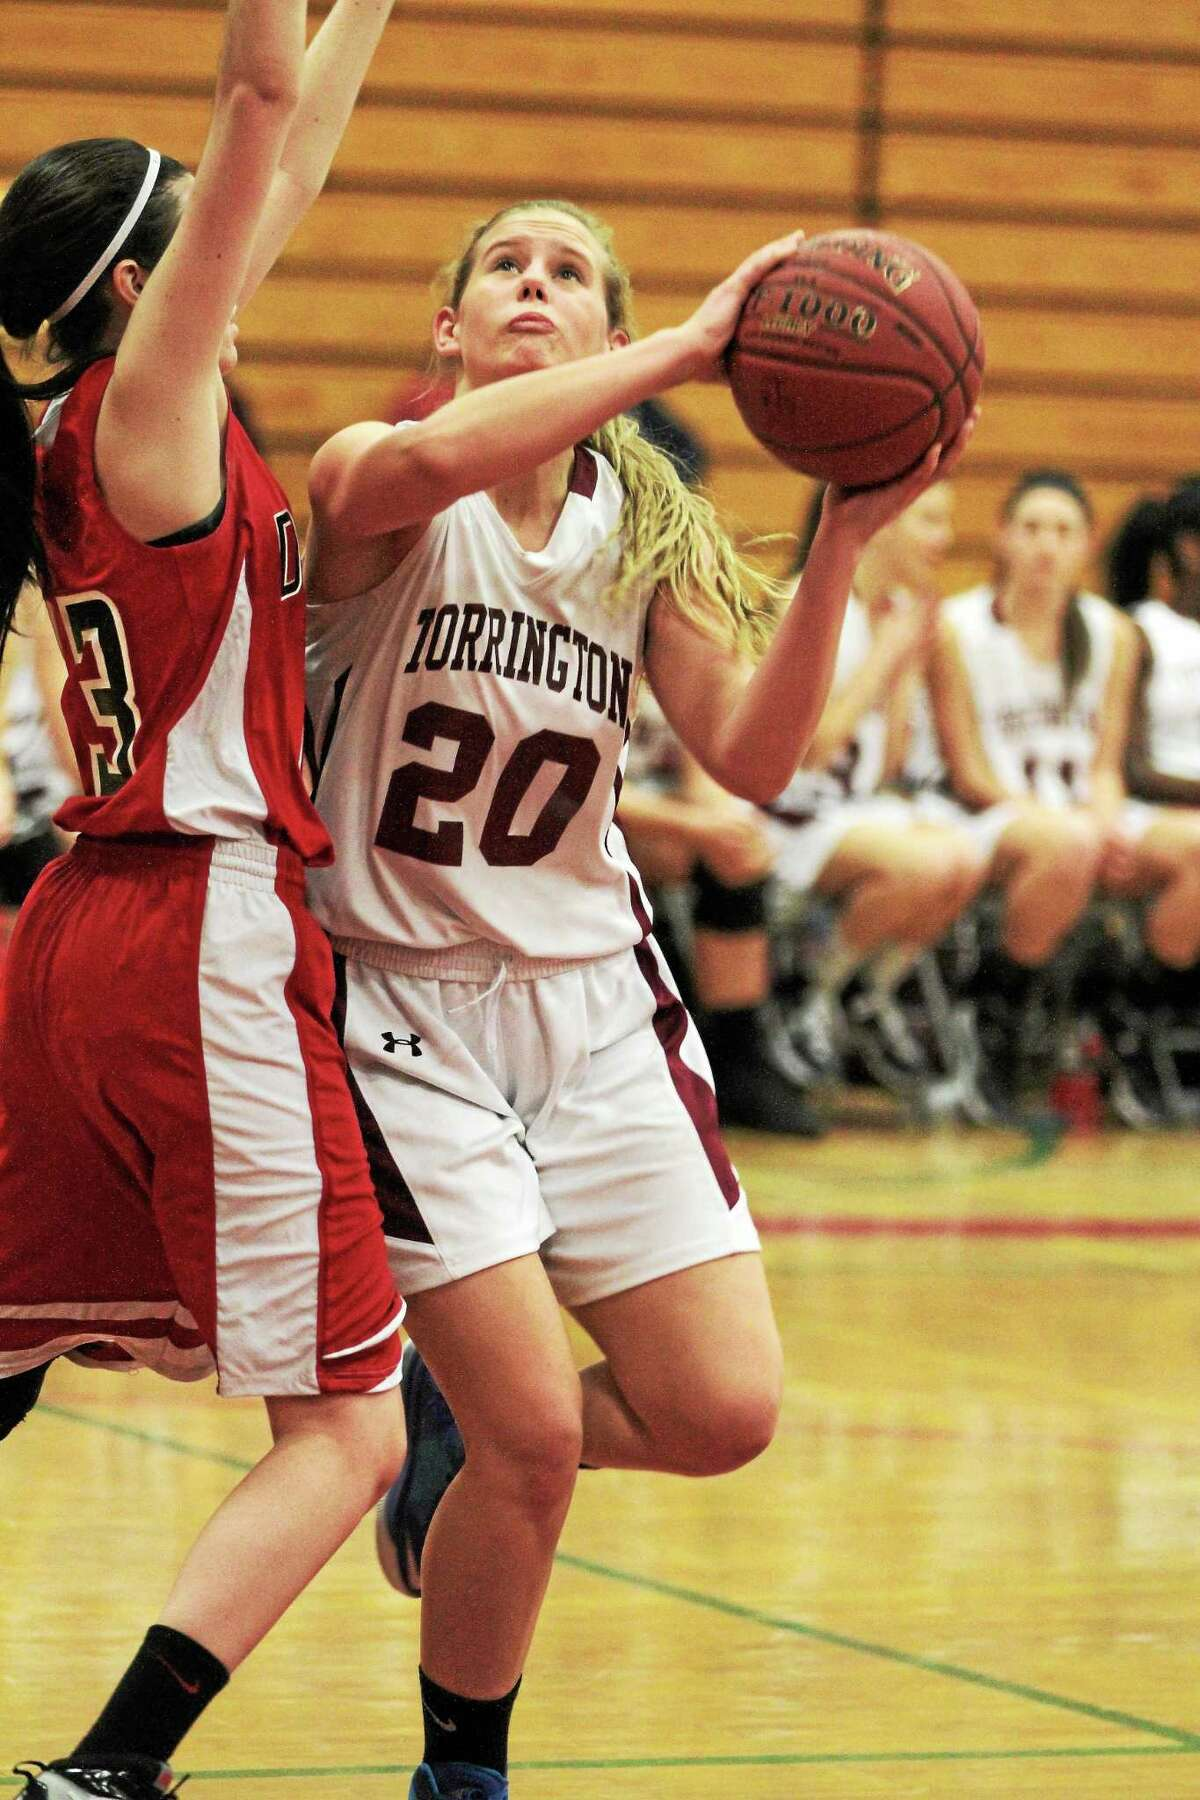 Torrington's Brittany Anderson goes up for a layup during the Red Raiders 71-41 win over Derby. Anderson finished with five points.